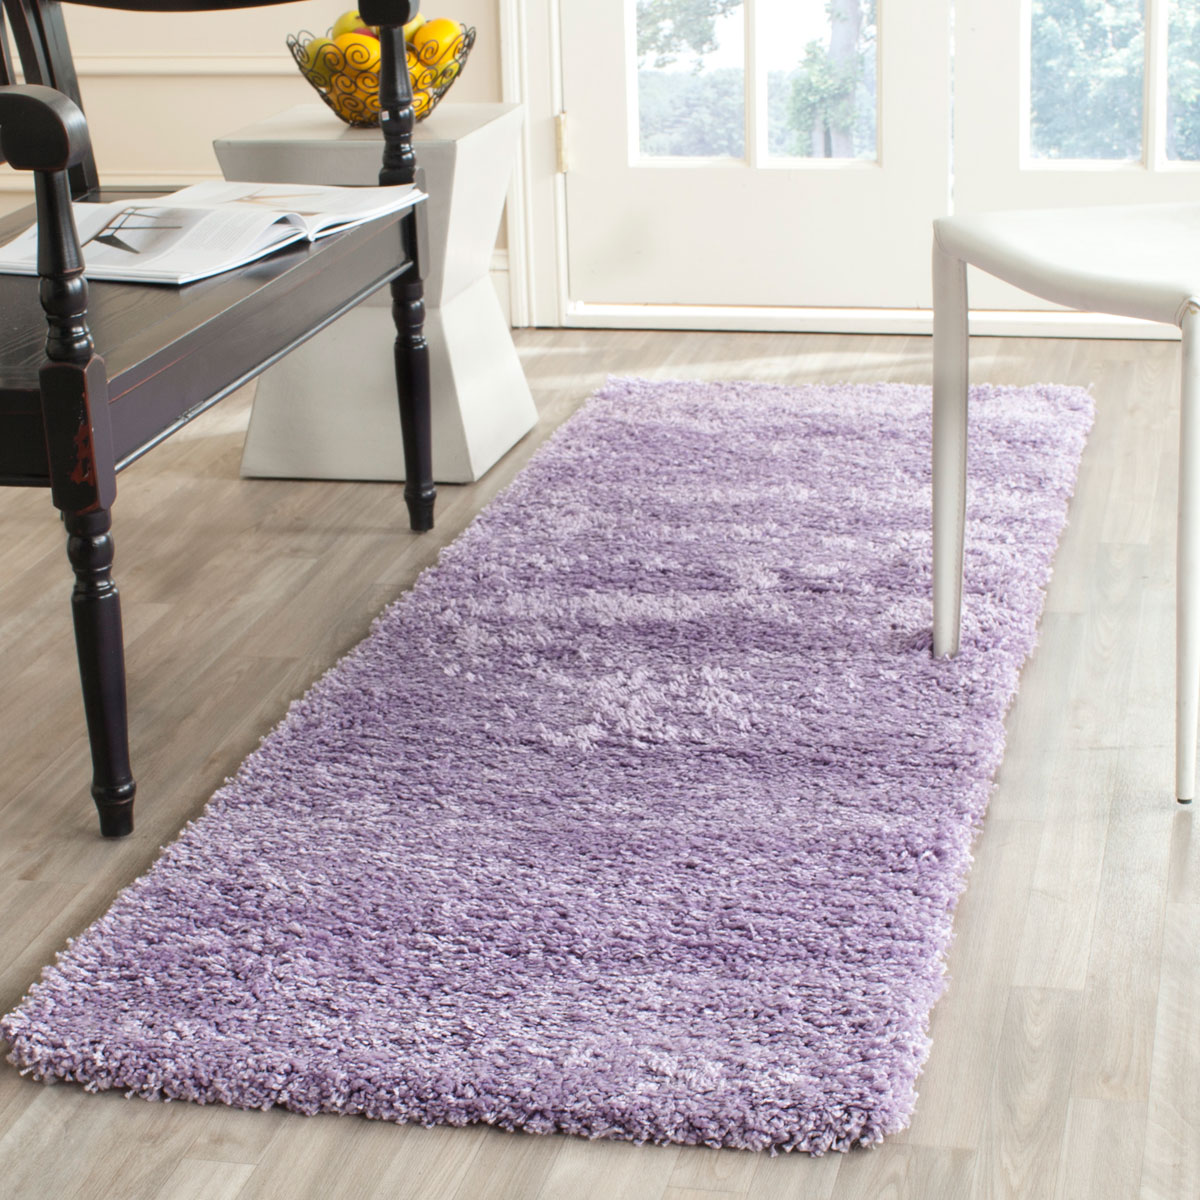 Plush Pile Lilac Shag Rug California Shags Safavieh